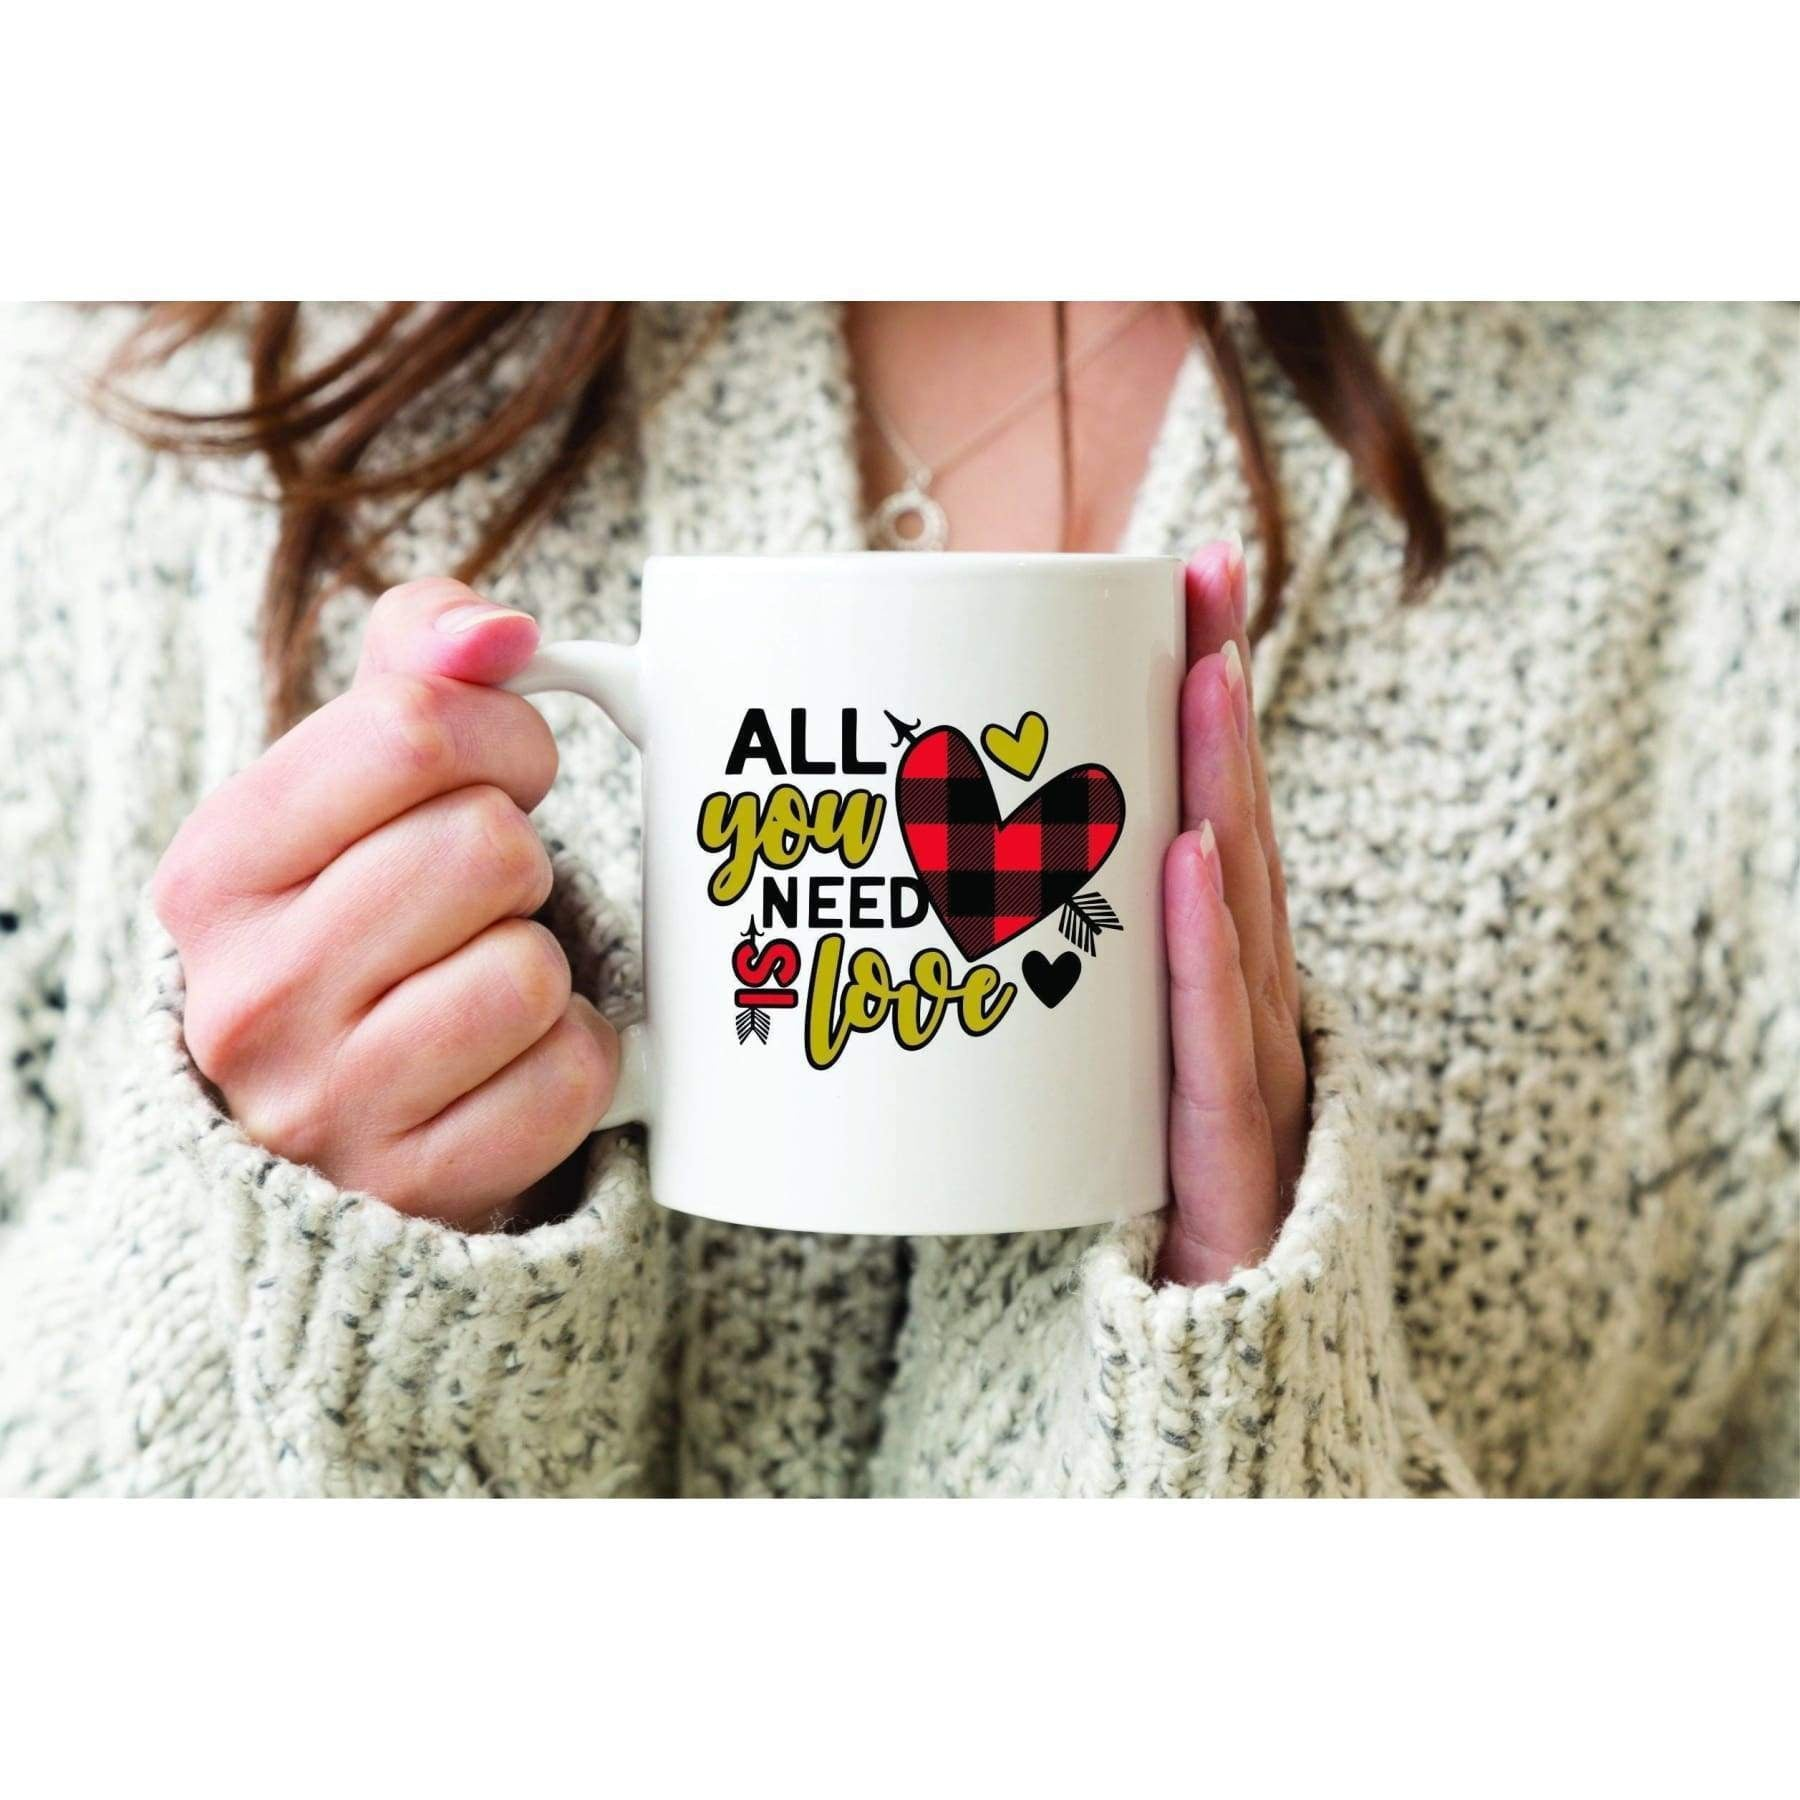 Love - That's all you need - is Love Cup.